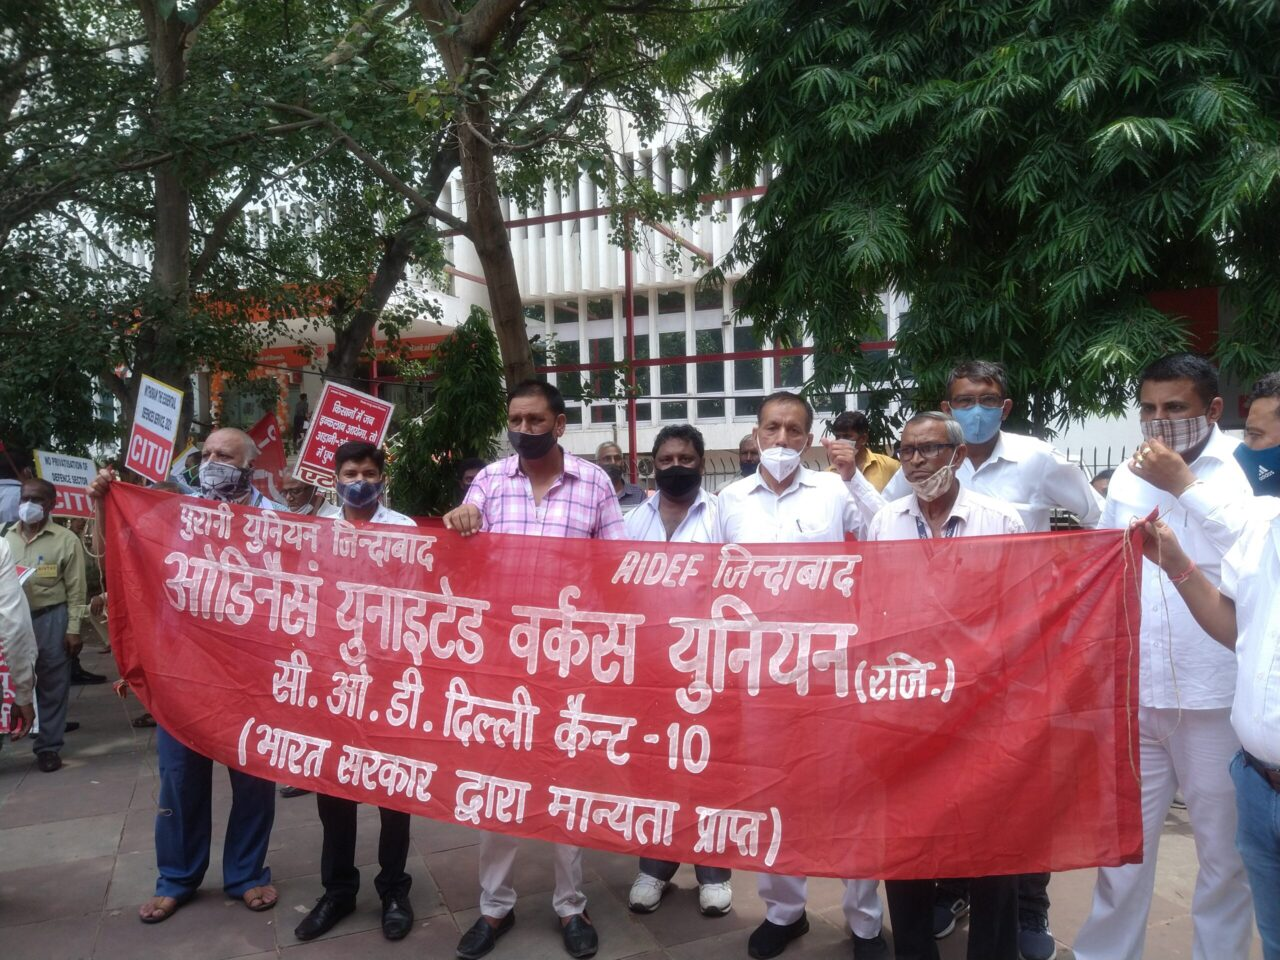 Defence workers protesting against EDSO in New Delhi on 23 July 2021